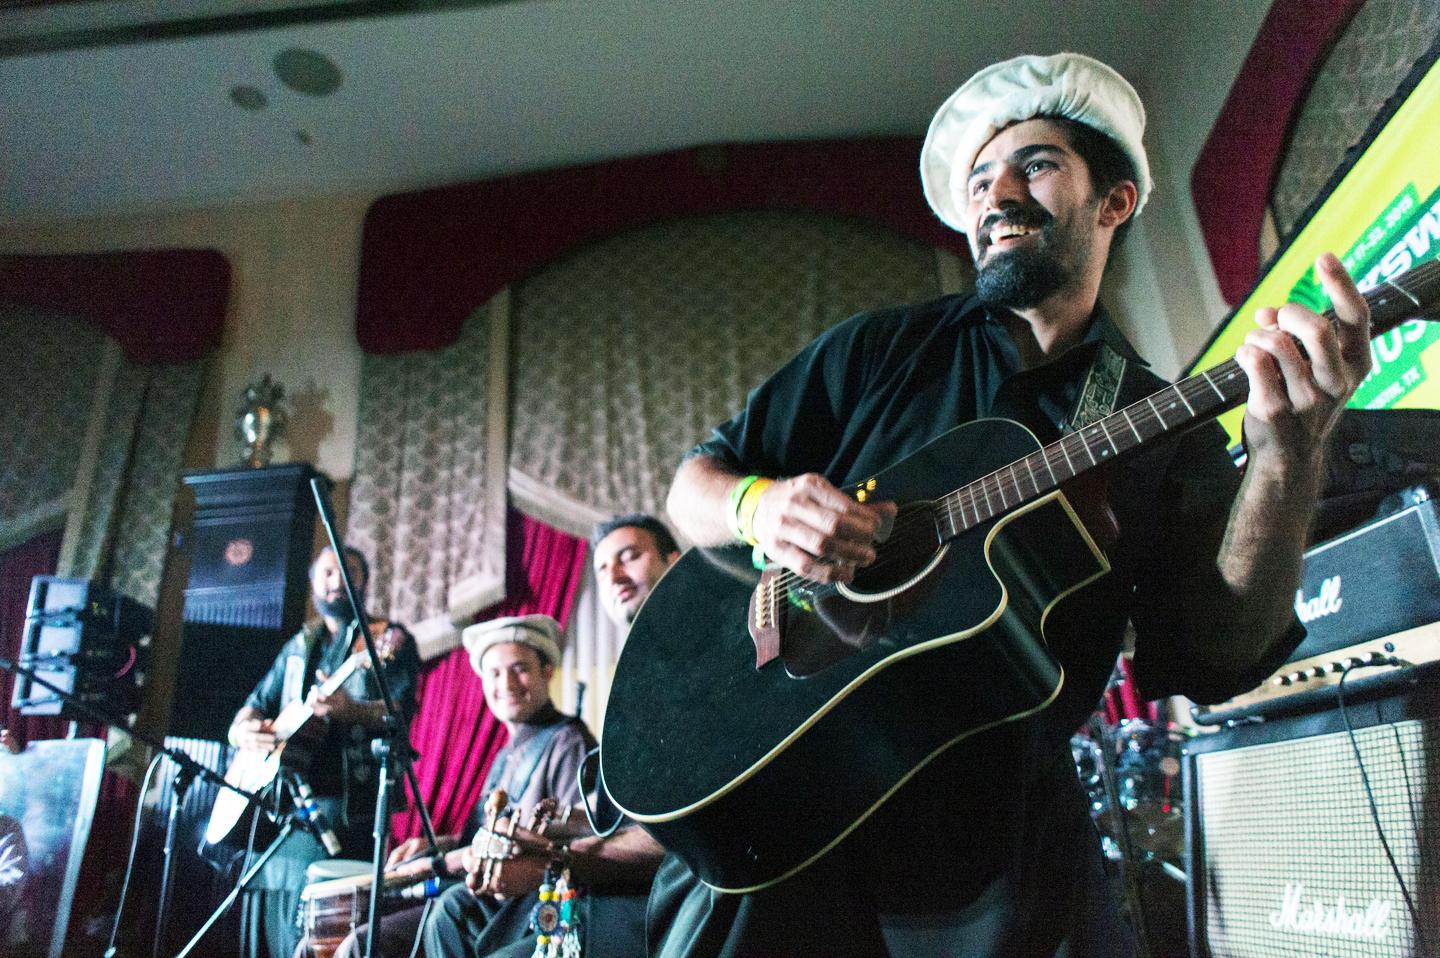 Khumaryann performs in the Victorian Room at The Driskill Hotel in Austin, Texas, SXSW 2015